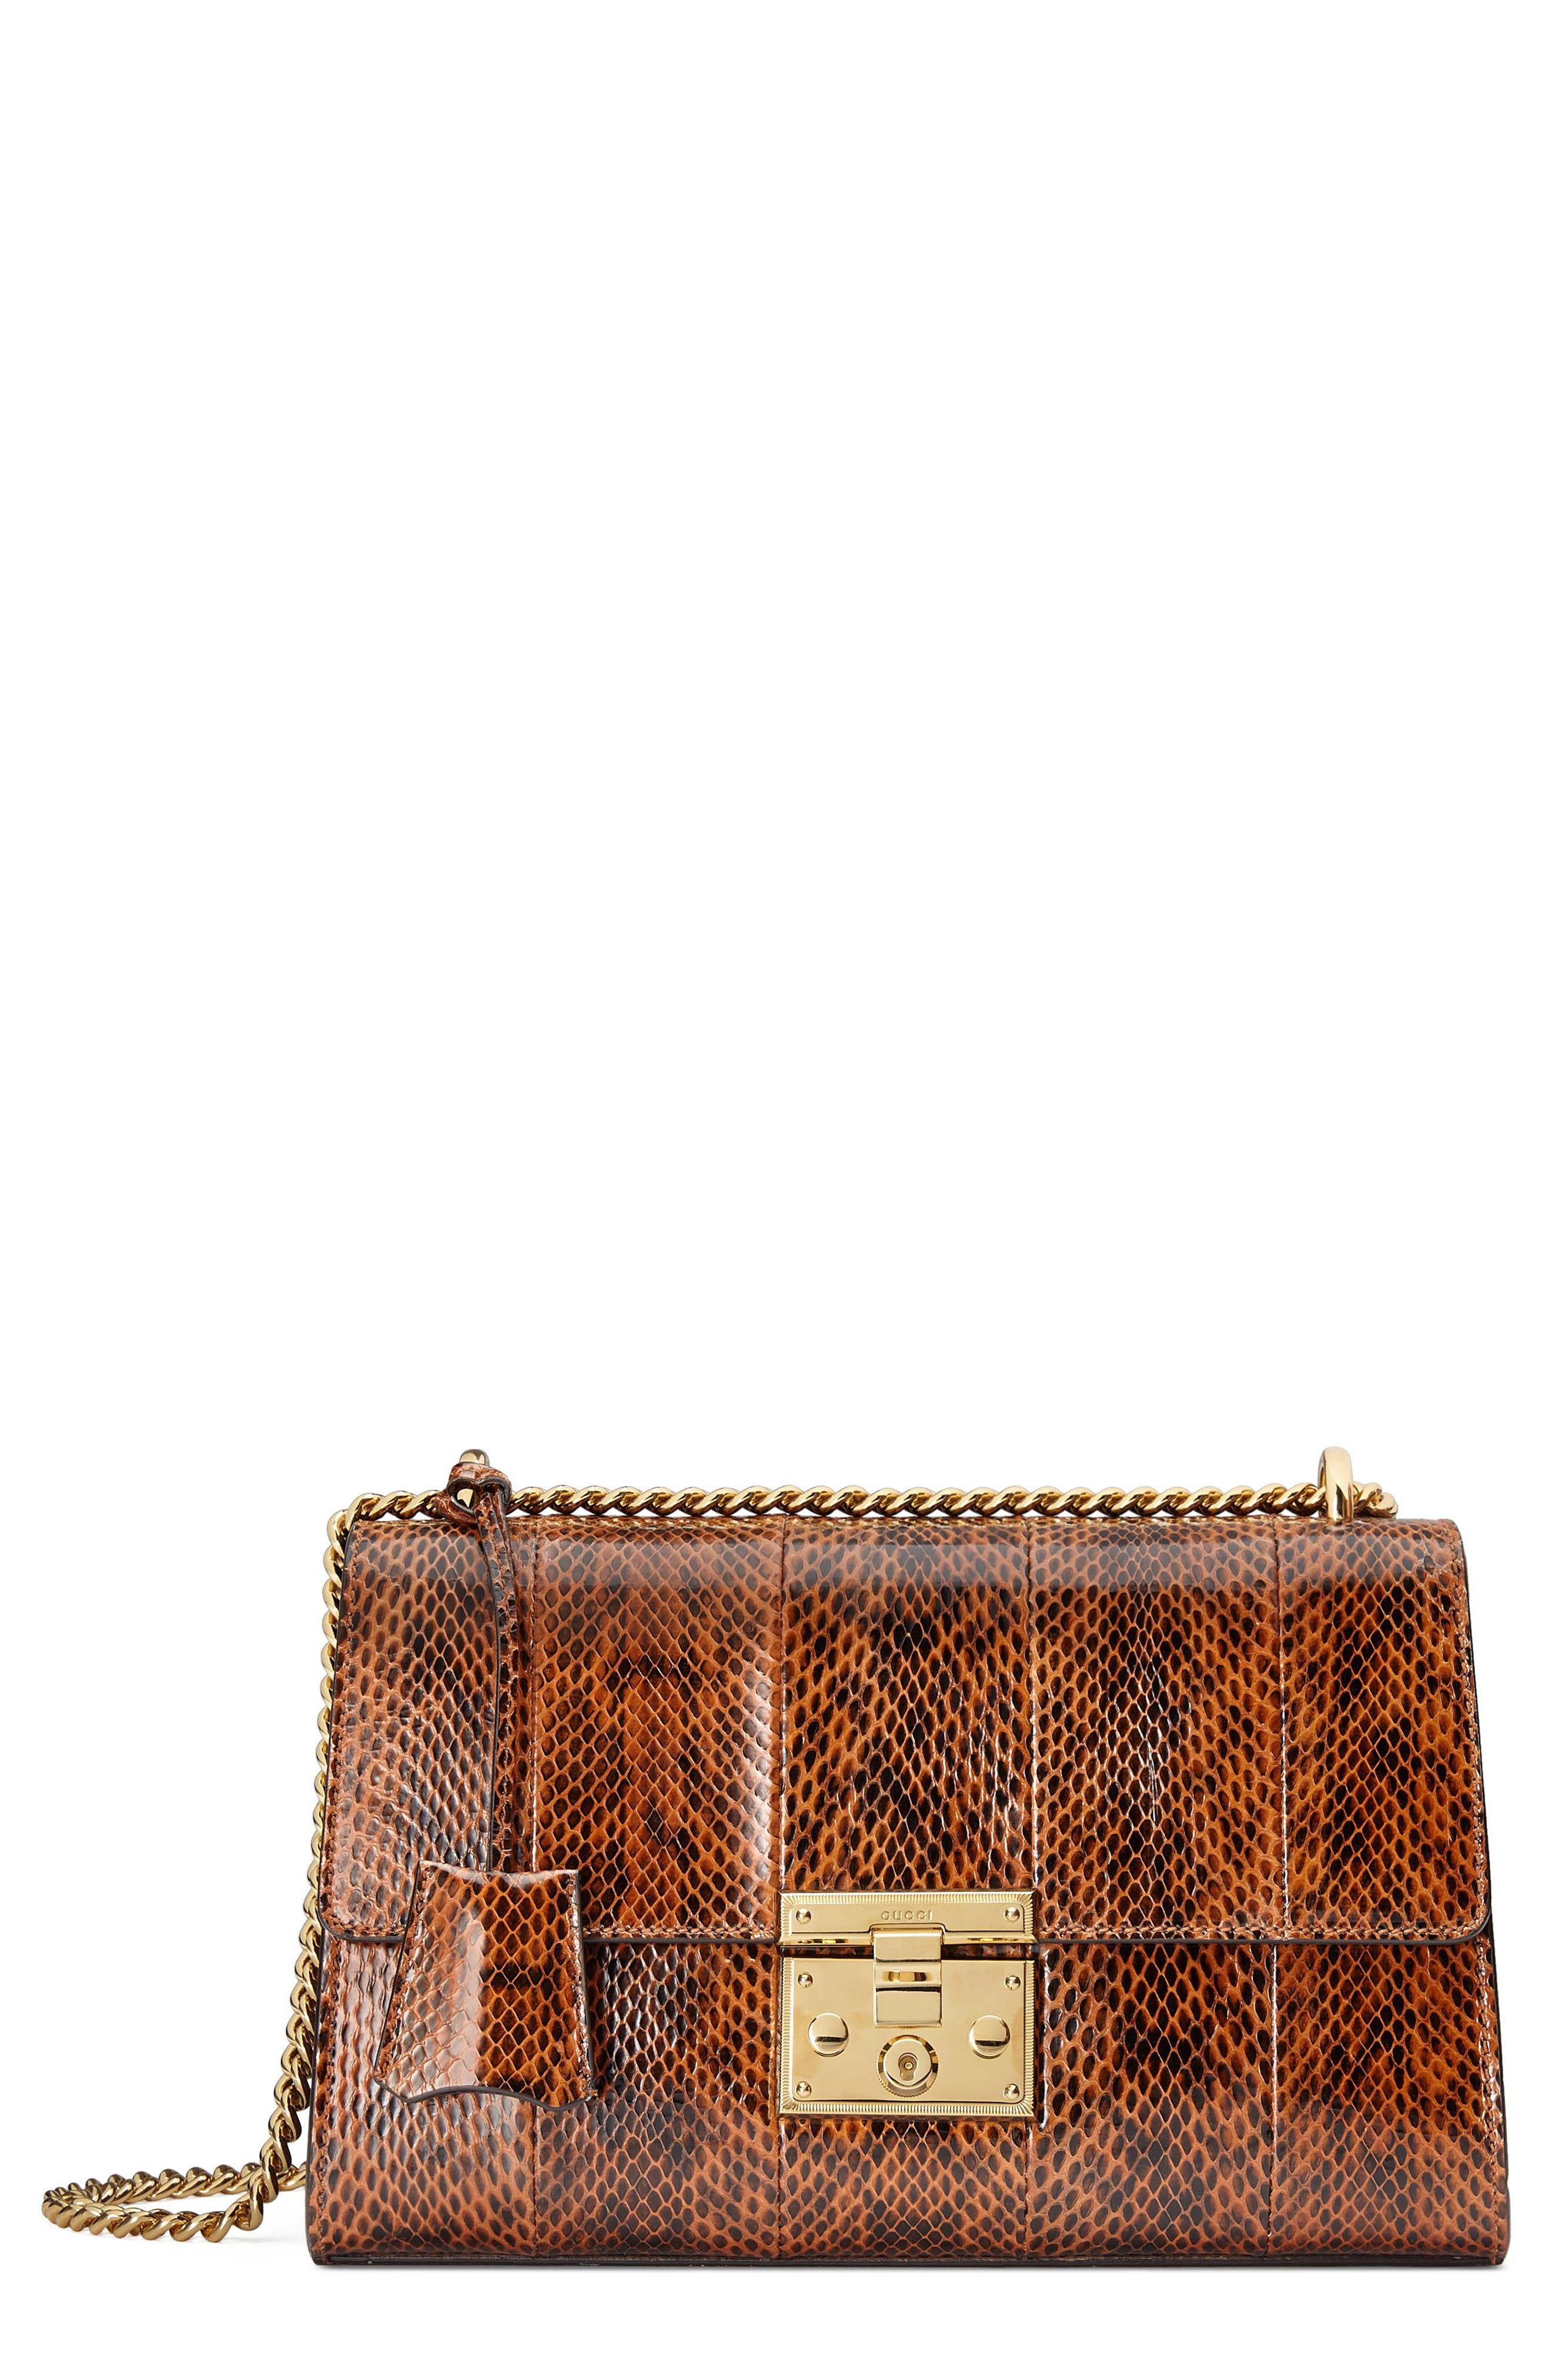 Medium Padlock - Elaphe Genuine Snakeskin Shoulder Bag,                         Main,                         color, BRIGHT CUIR